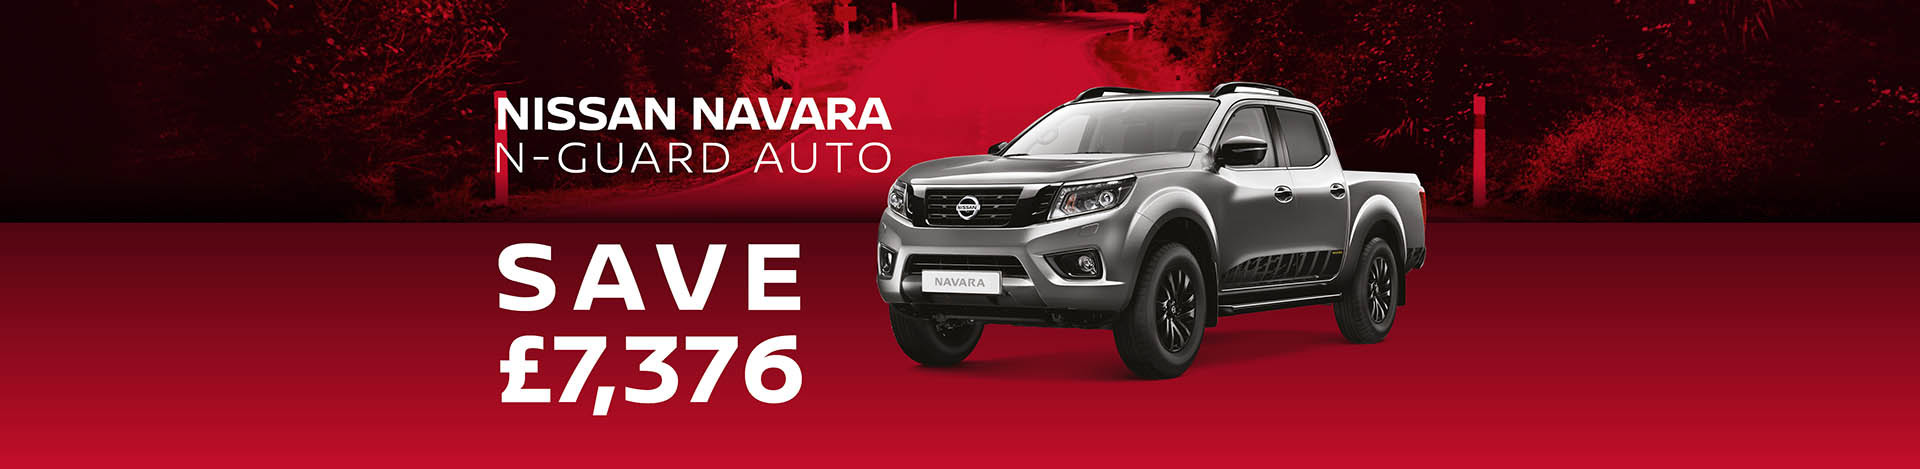 Nissan Navara N-Guard Auto Offer